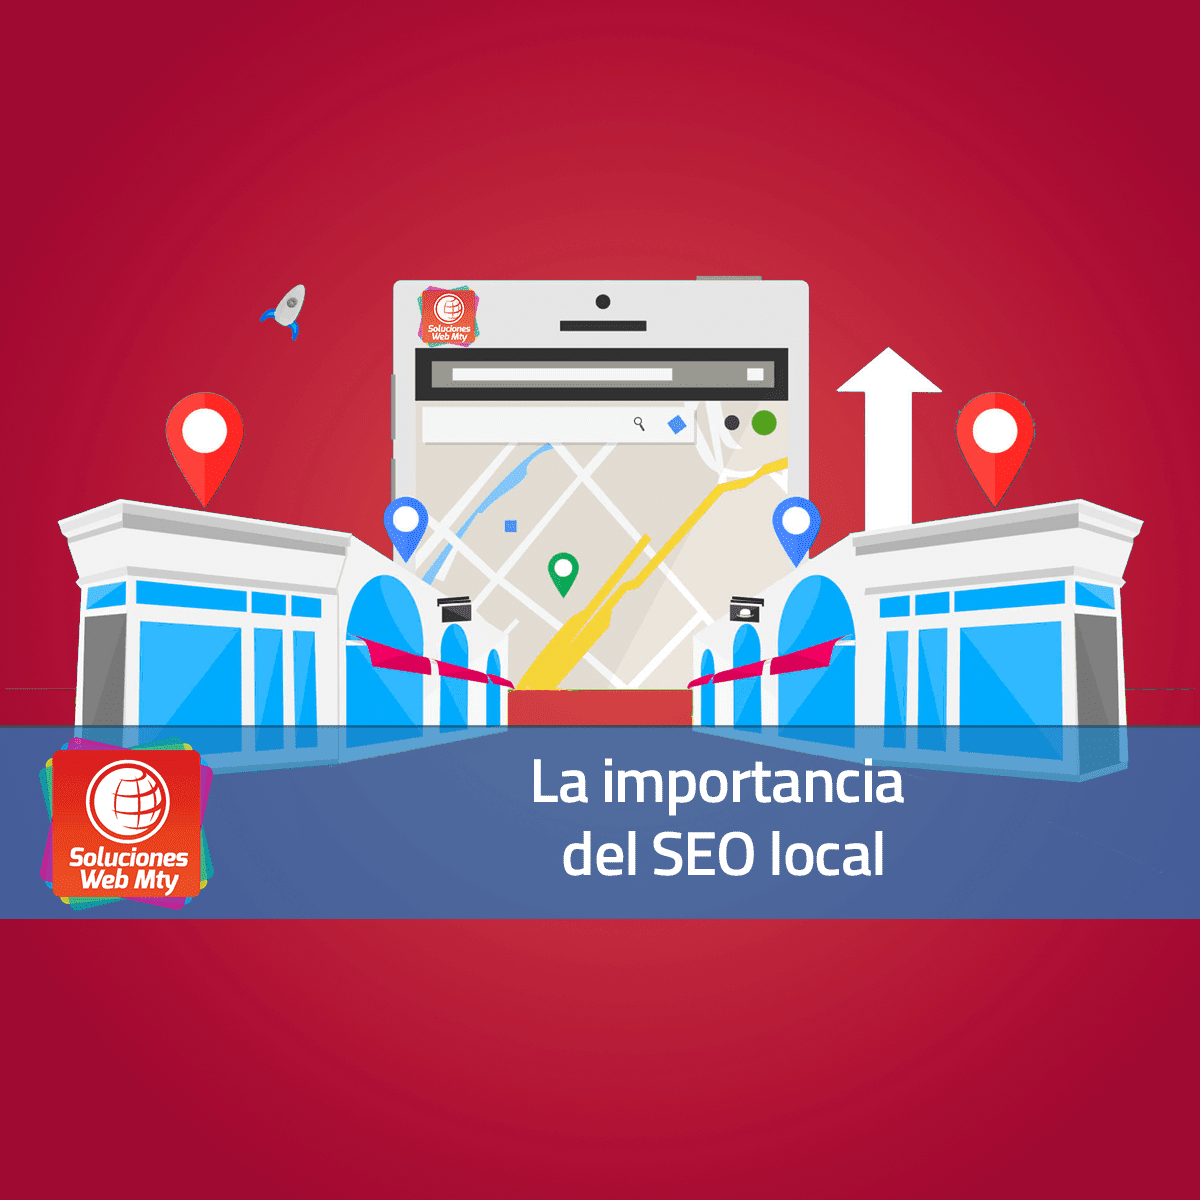 La importancia del SEO local